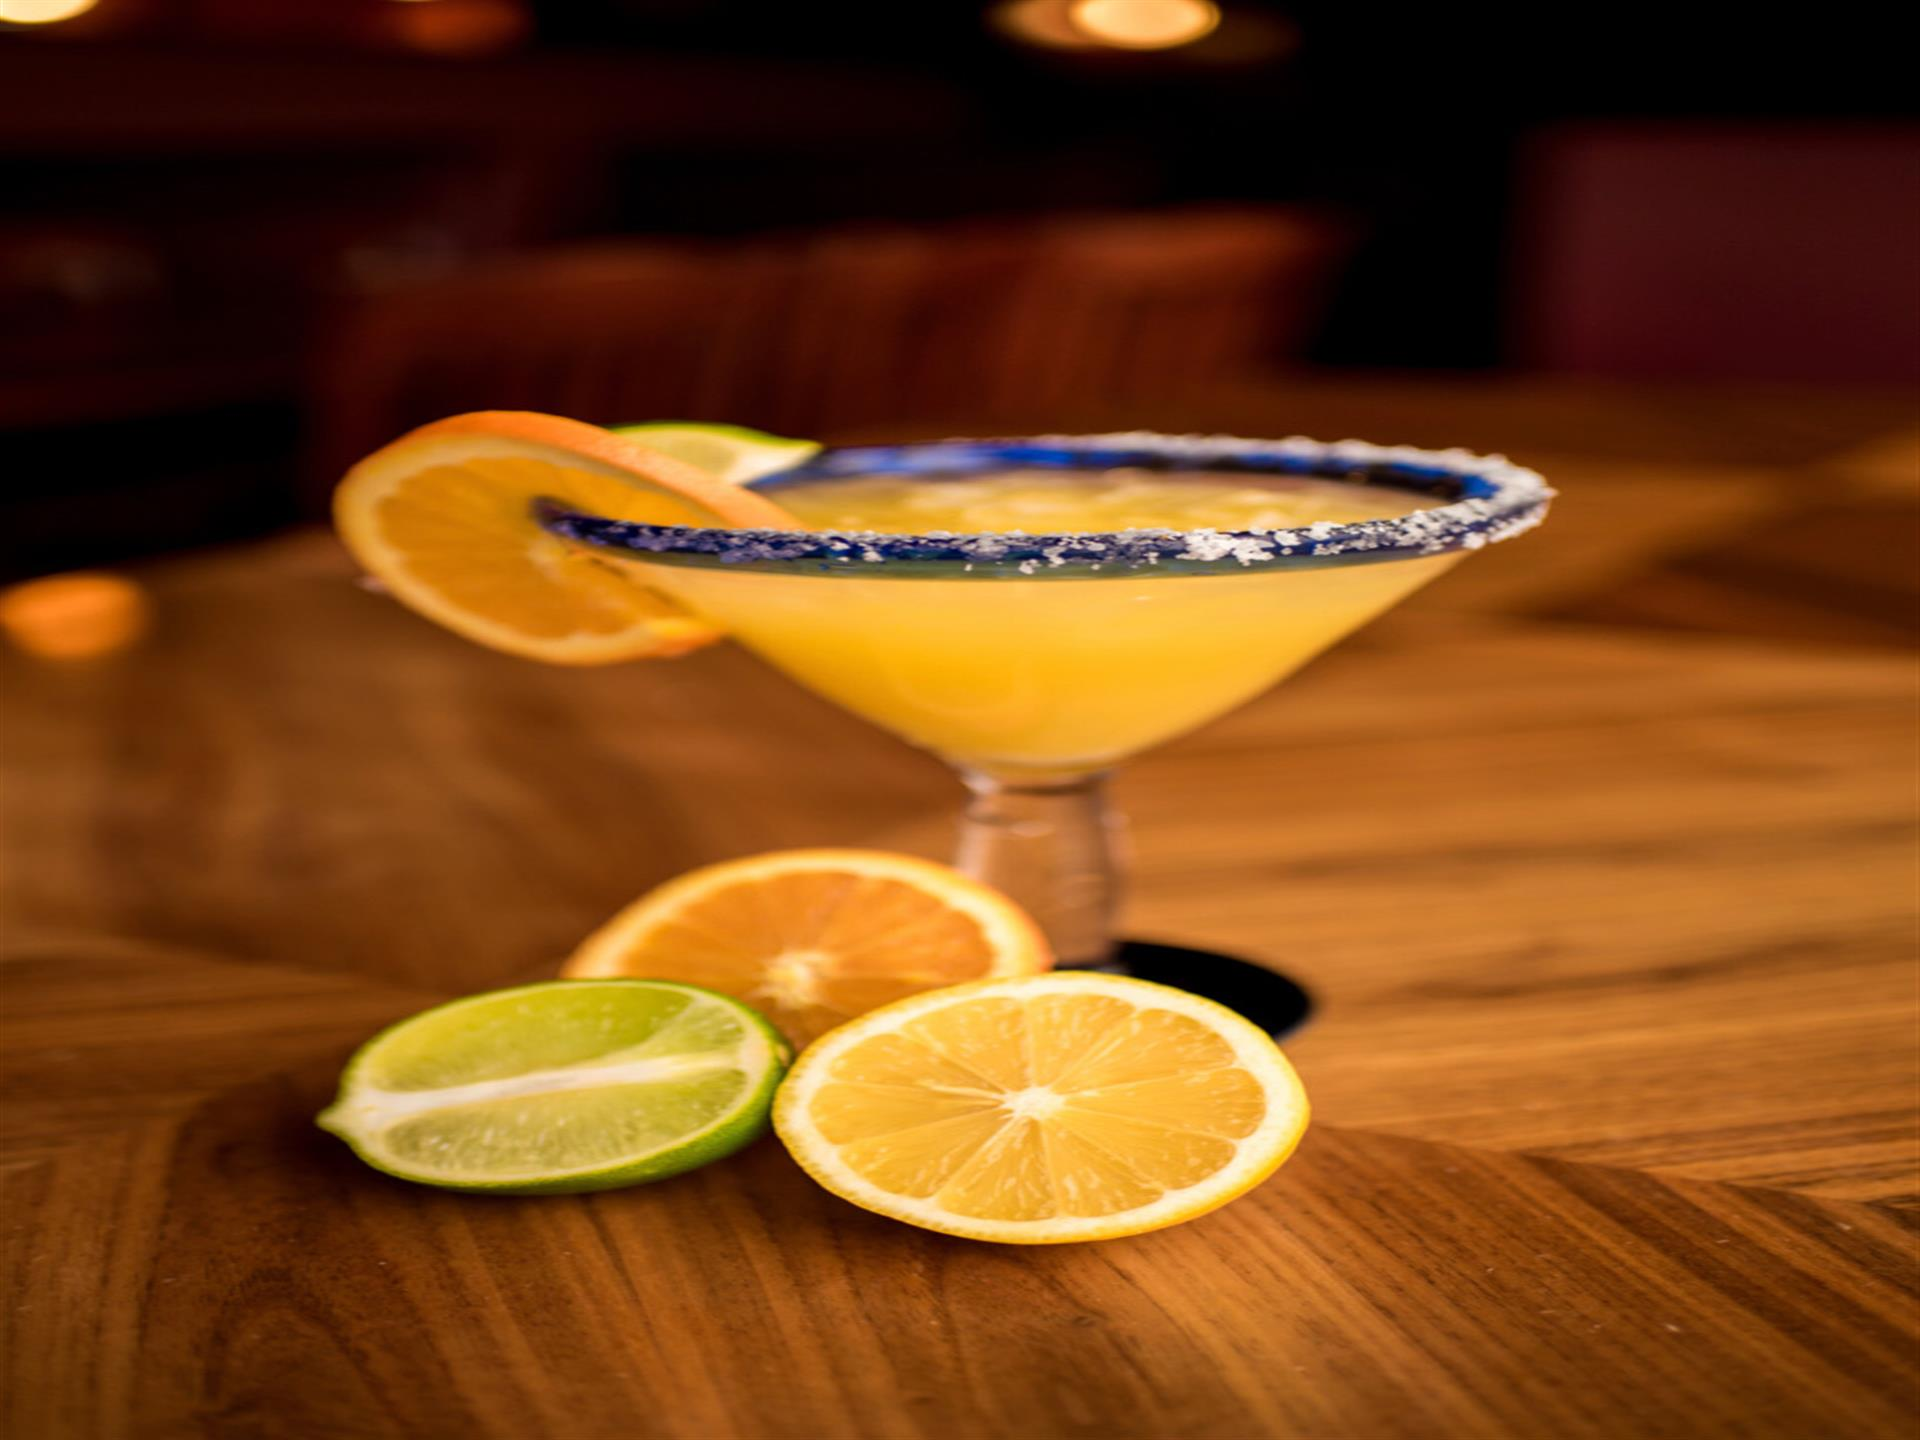 Skinny Margarita lexington